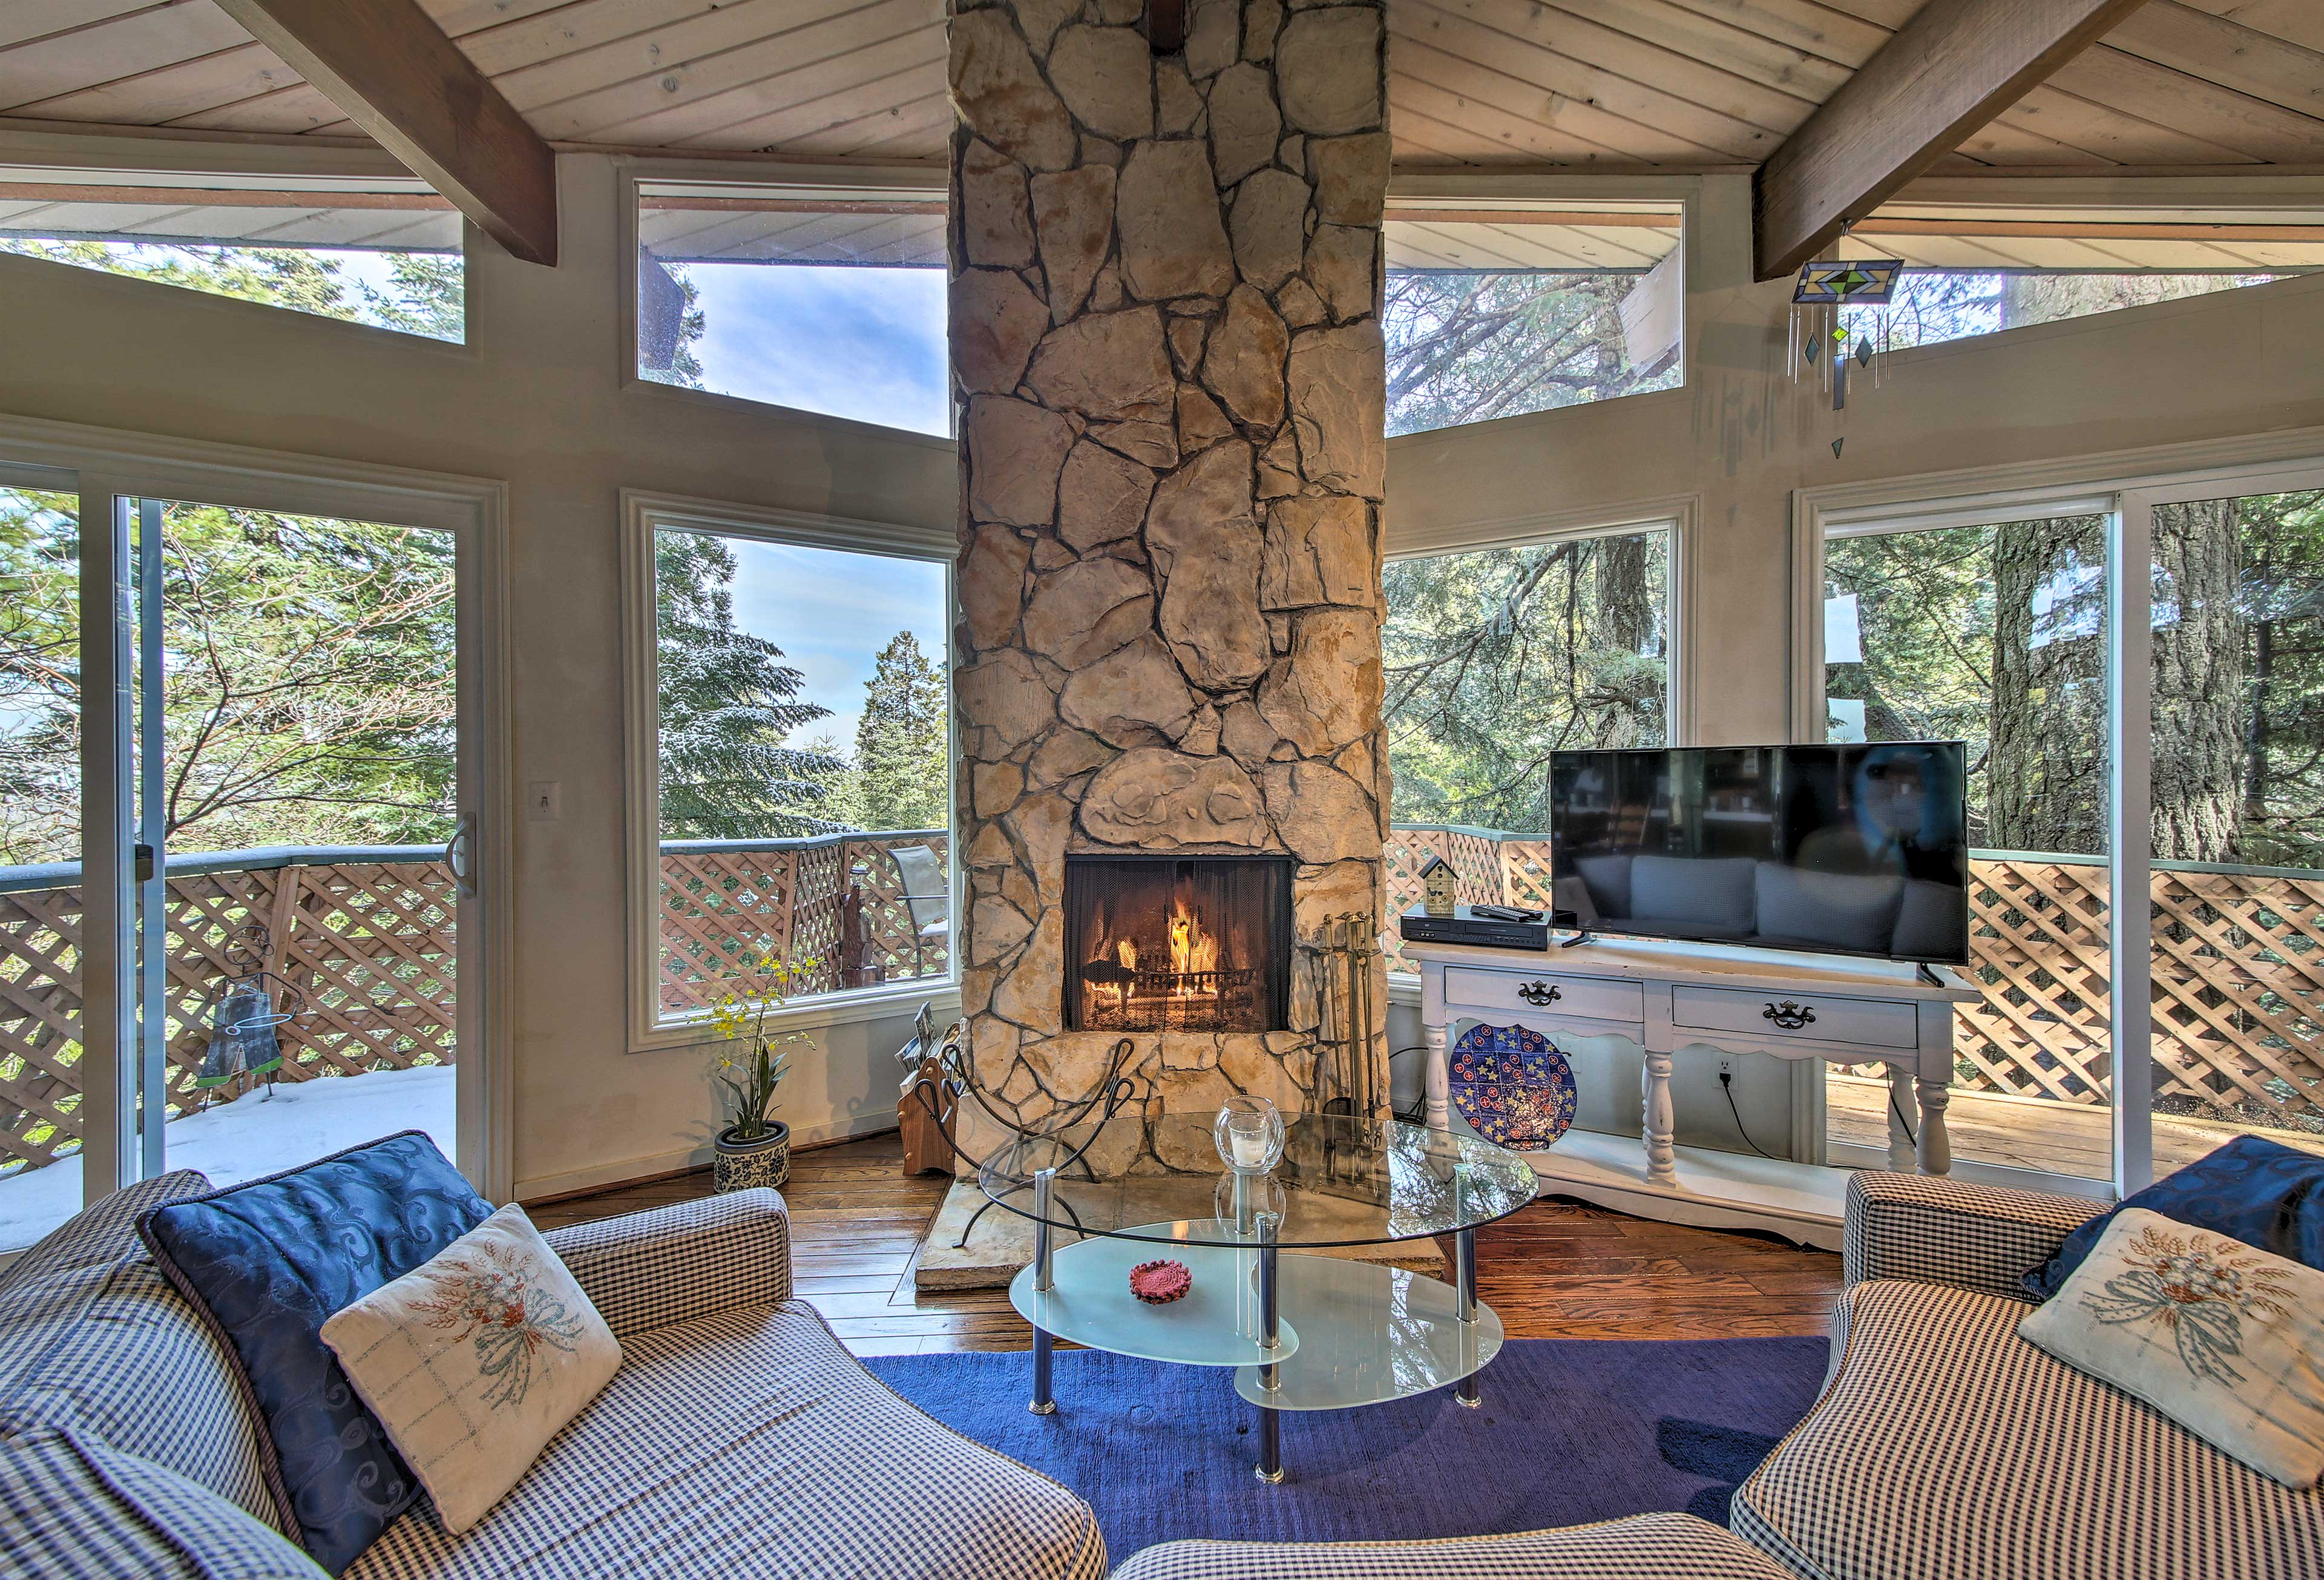 Escape to the mountains at this 4-bedroom, 3-bathroom Lake Arrowhead rental.